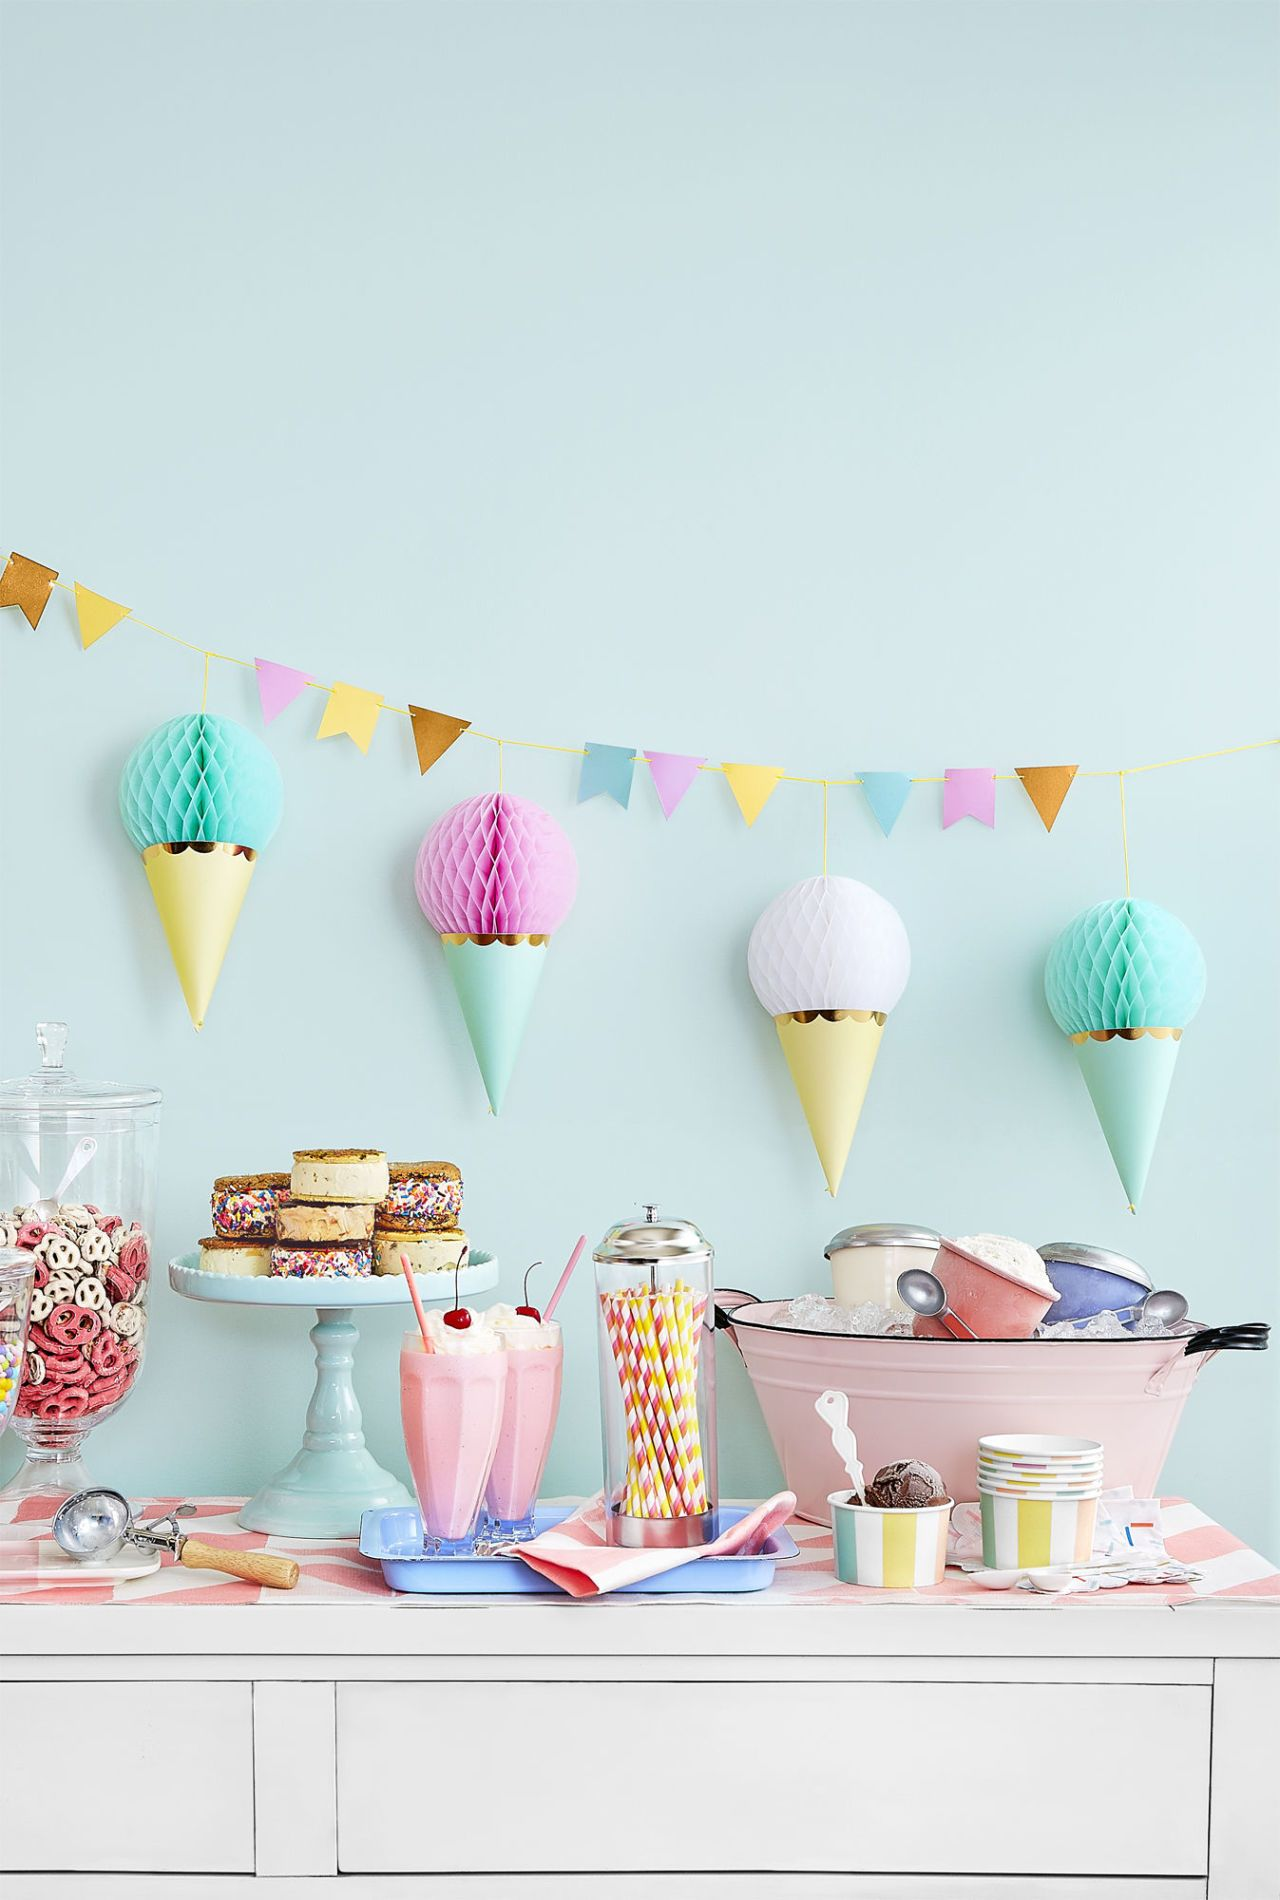 37 Creative Baby Shower Food And Decorating Ideas